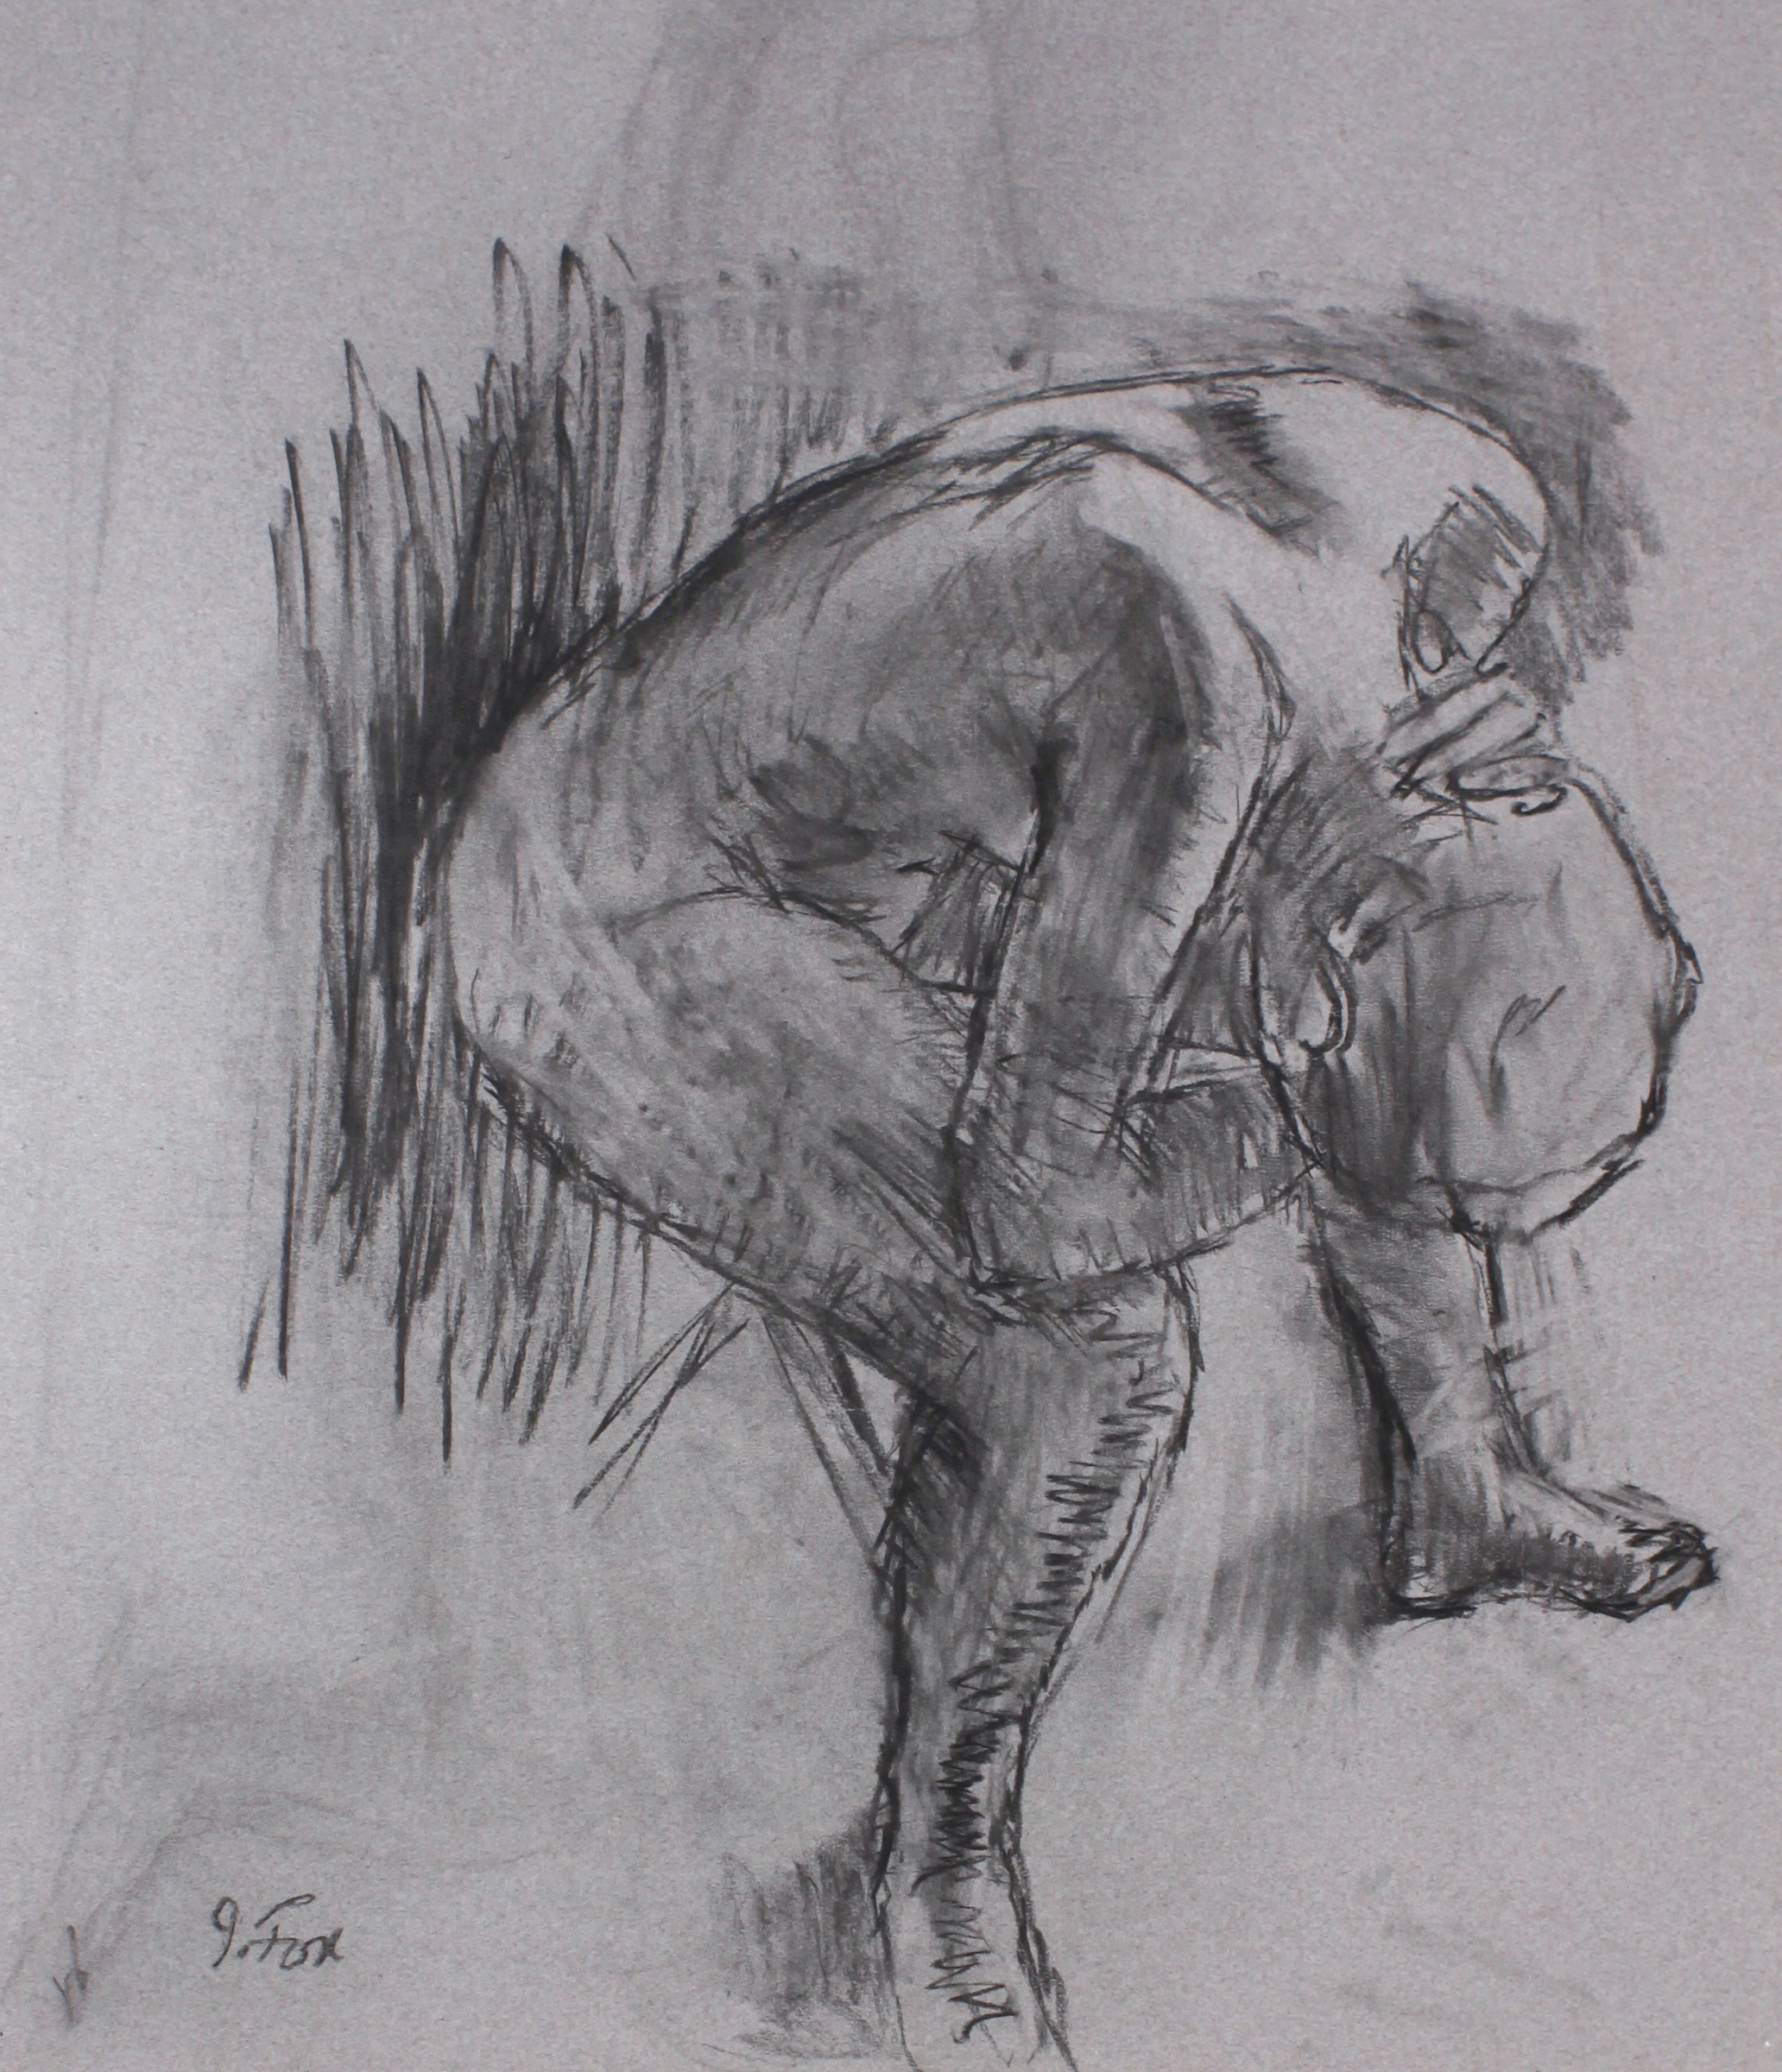 1990s_Seated_Nude_Bent_Over_With_Hand_on_Neck_charcoal_on_paper_22x19in_WPF489.jpg